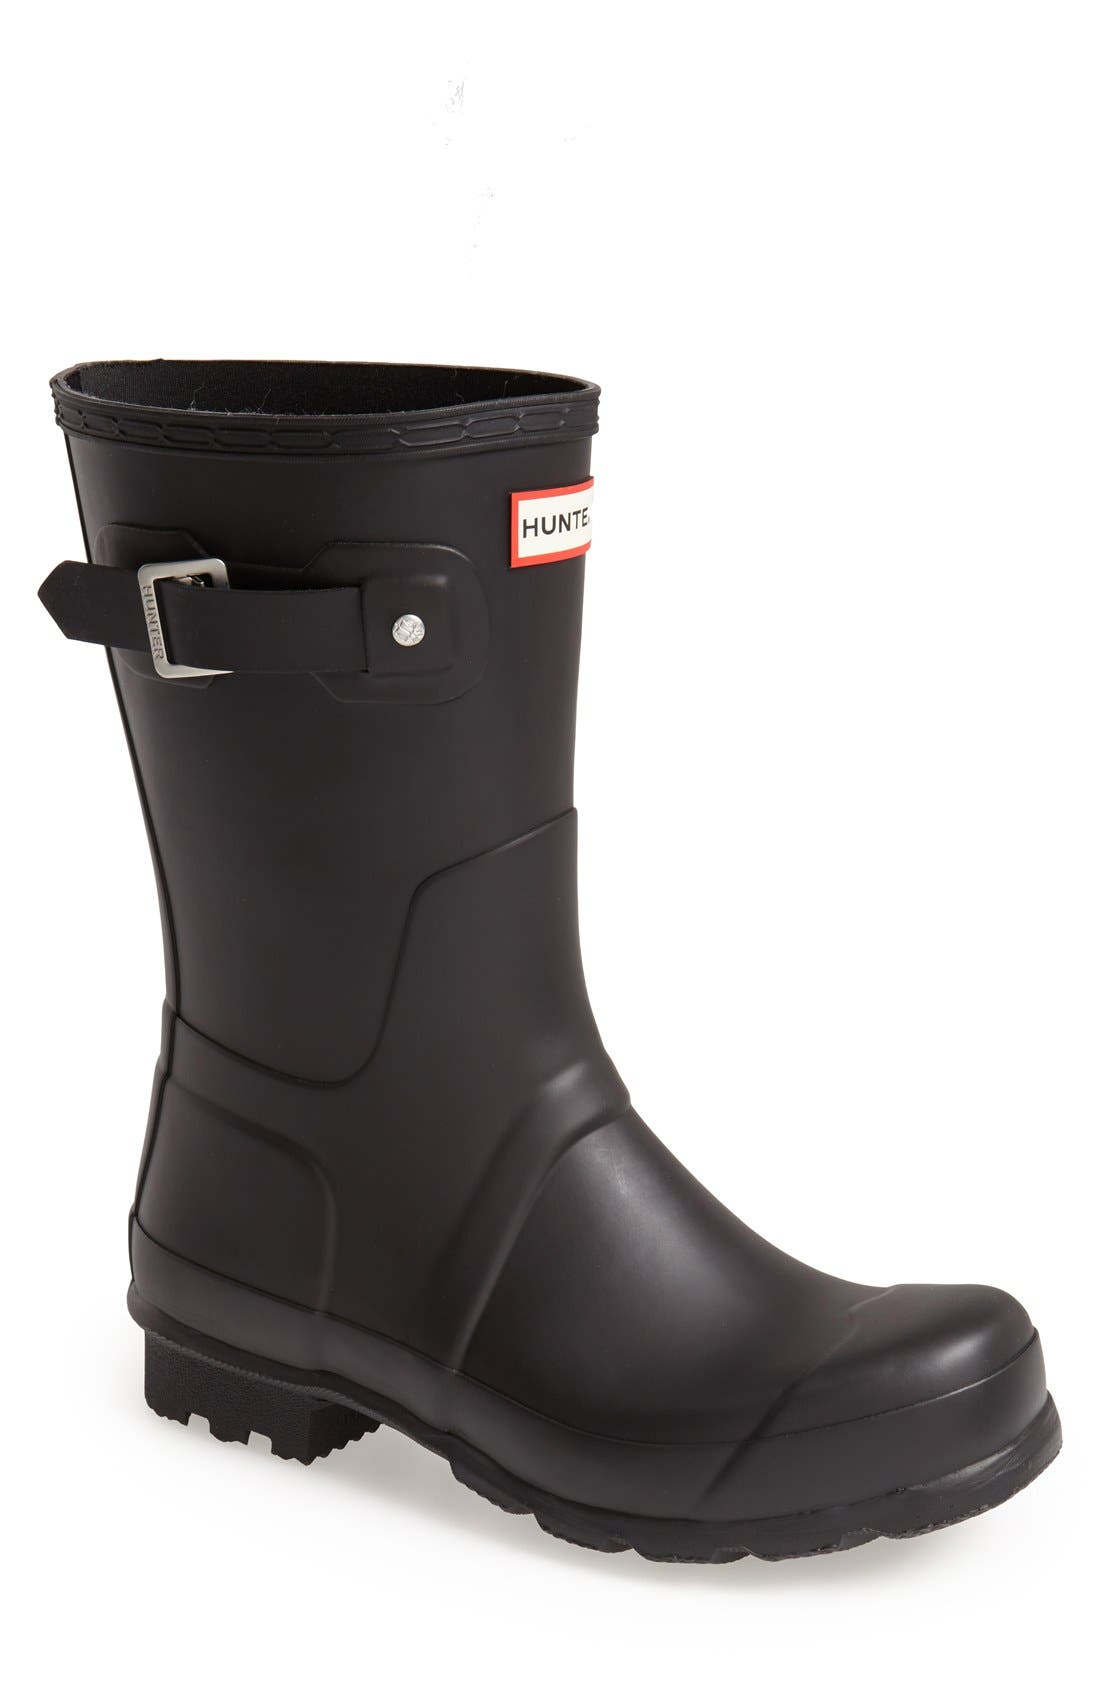 HUNTER Original Short Waterproof Rain Boot, Main, color, BLACK